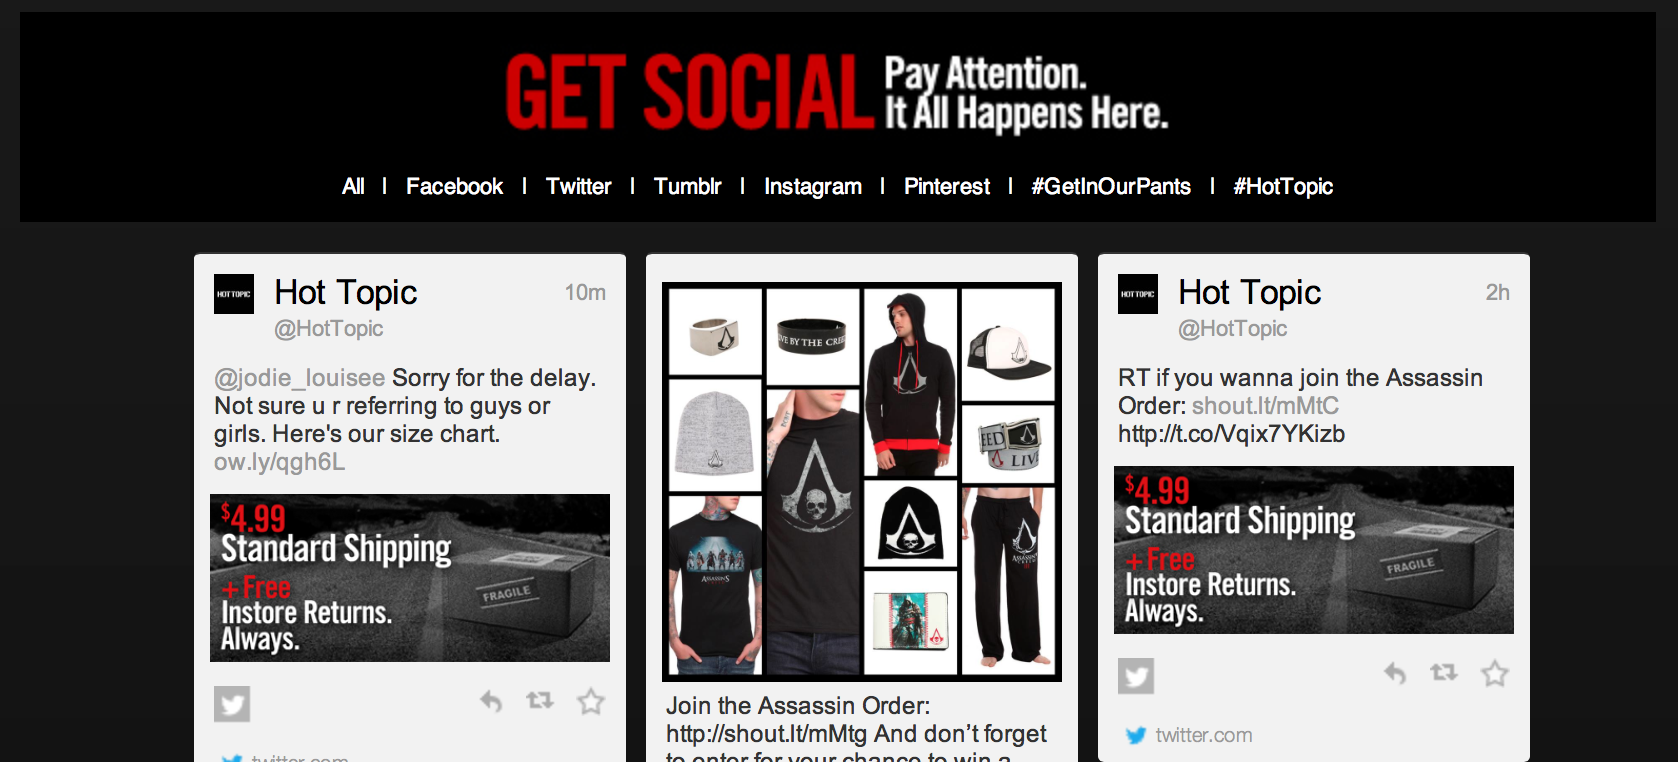 necessary ecommerce site features social sharing